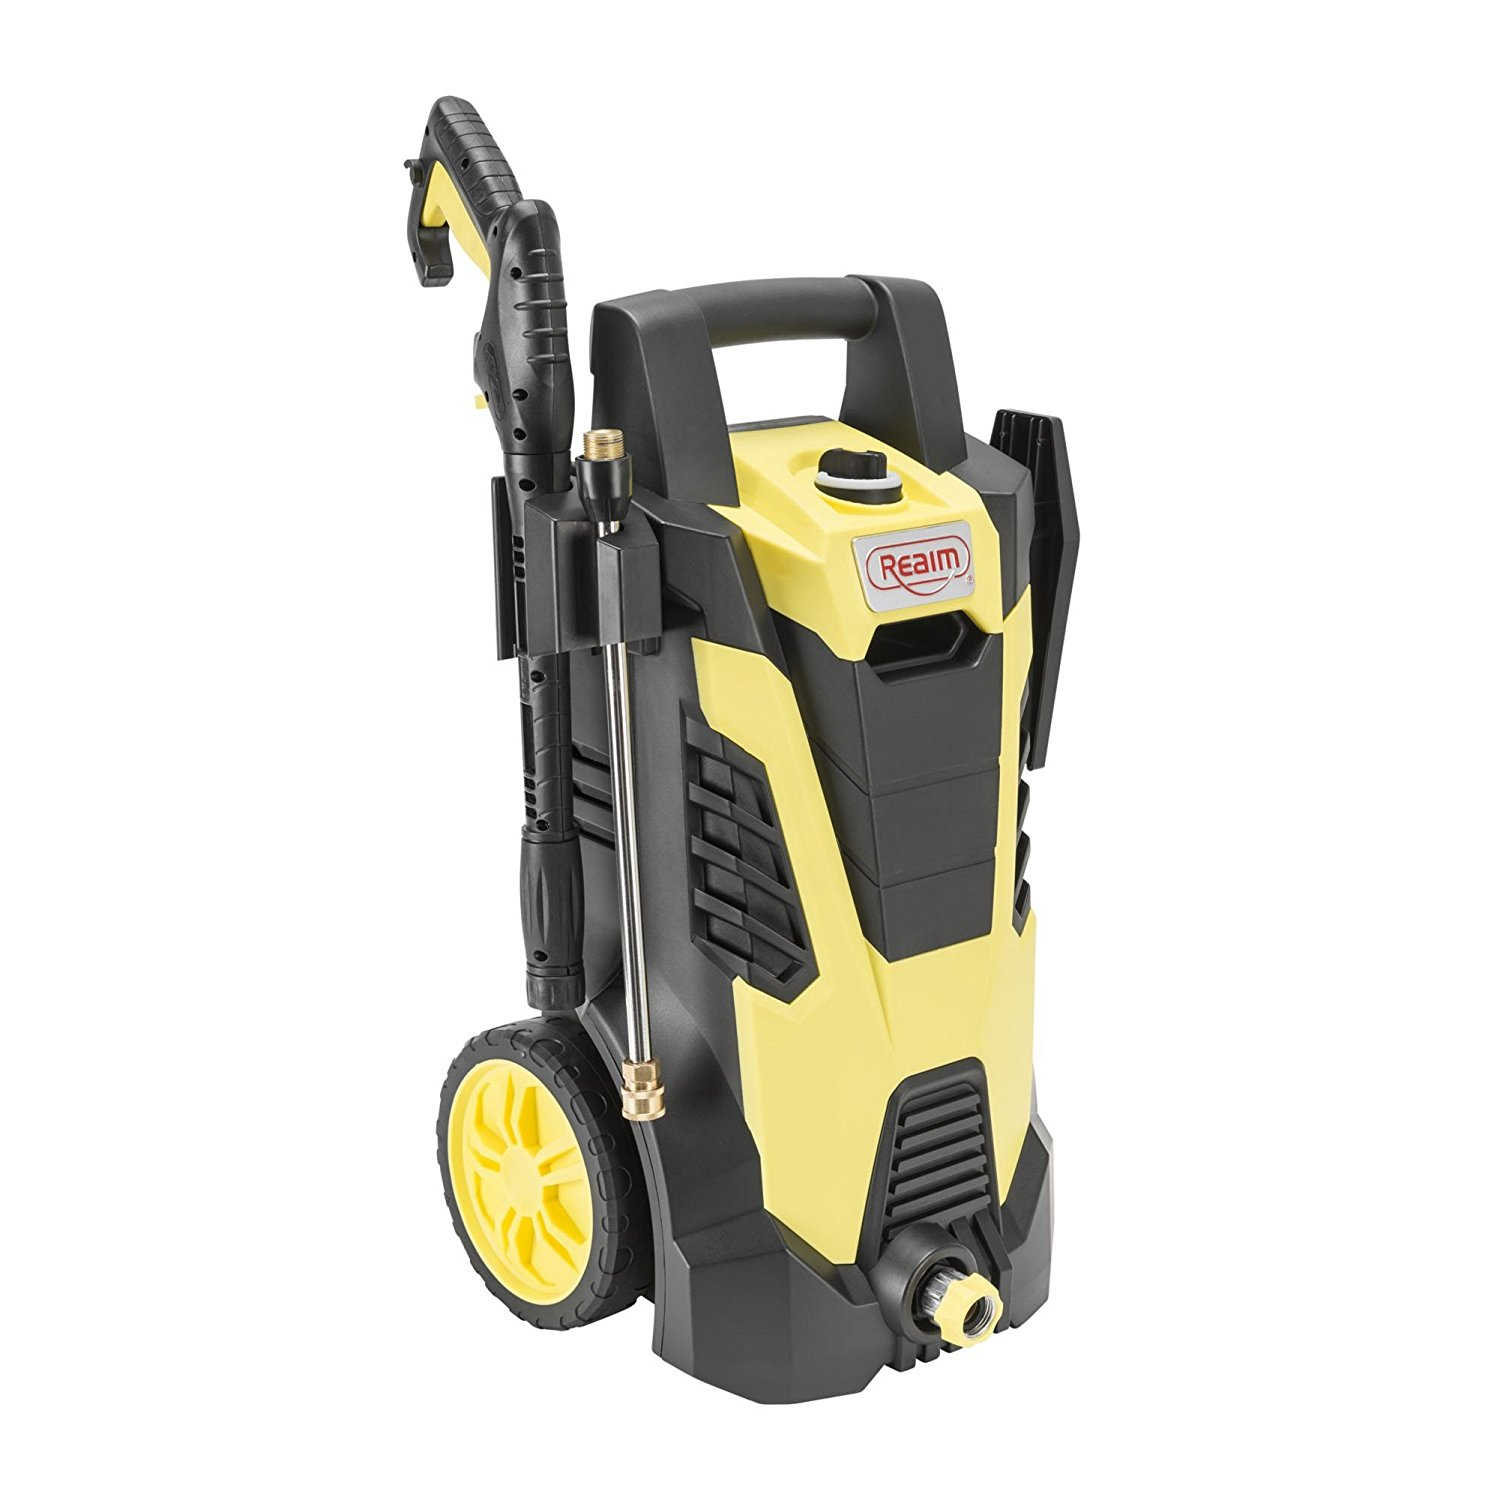 BY02-BCMT, Electric Pressure Washer, 2100 PSI, 1.75 GPM, 14.5 Amp, Yellow Black